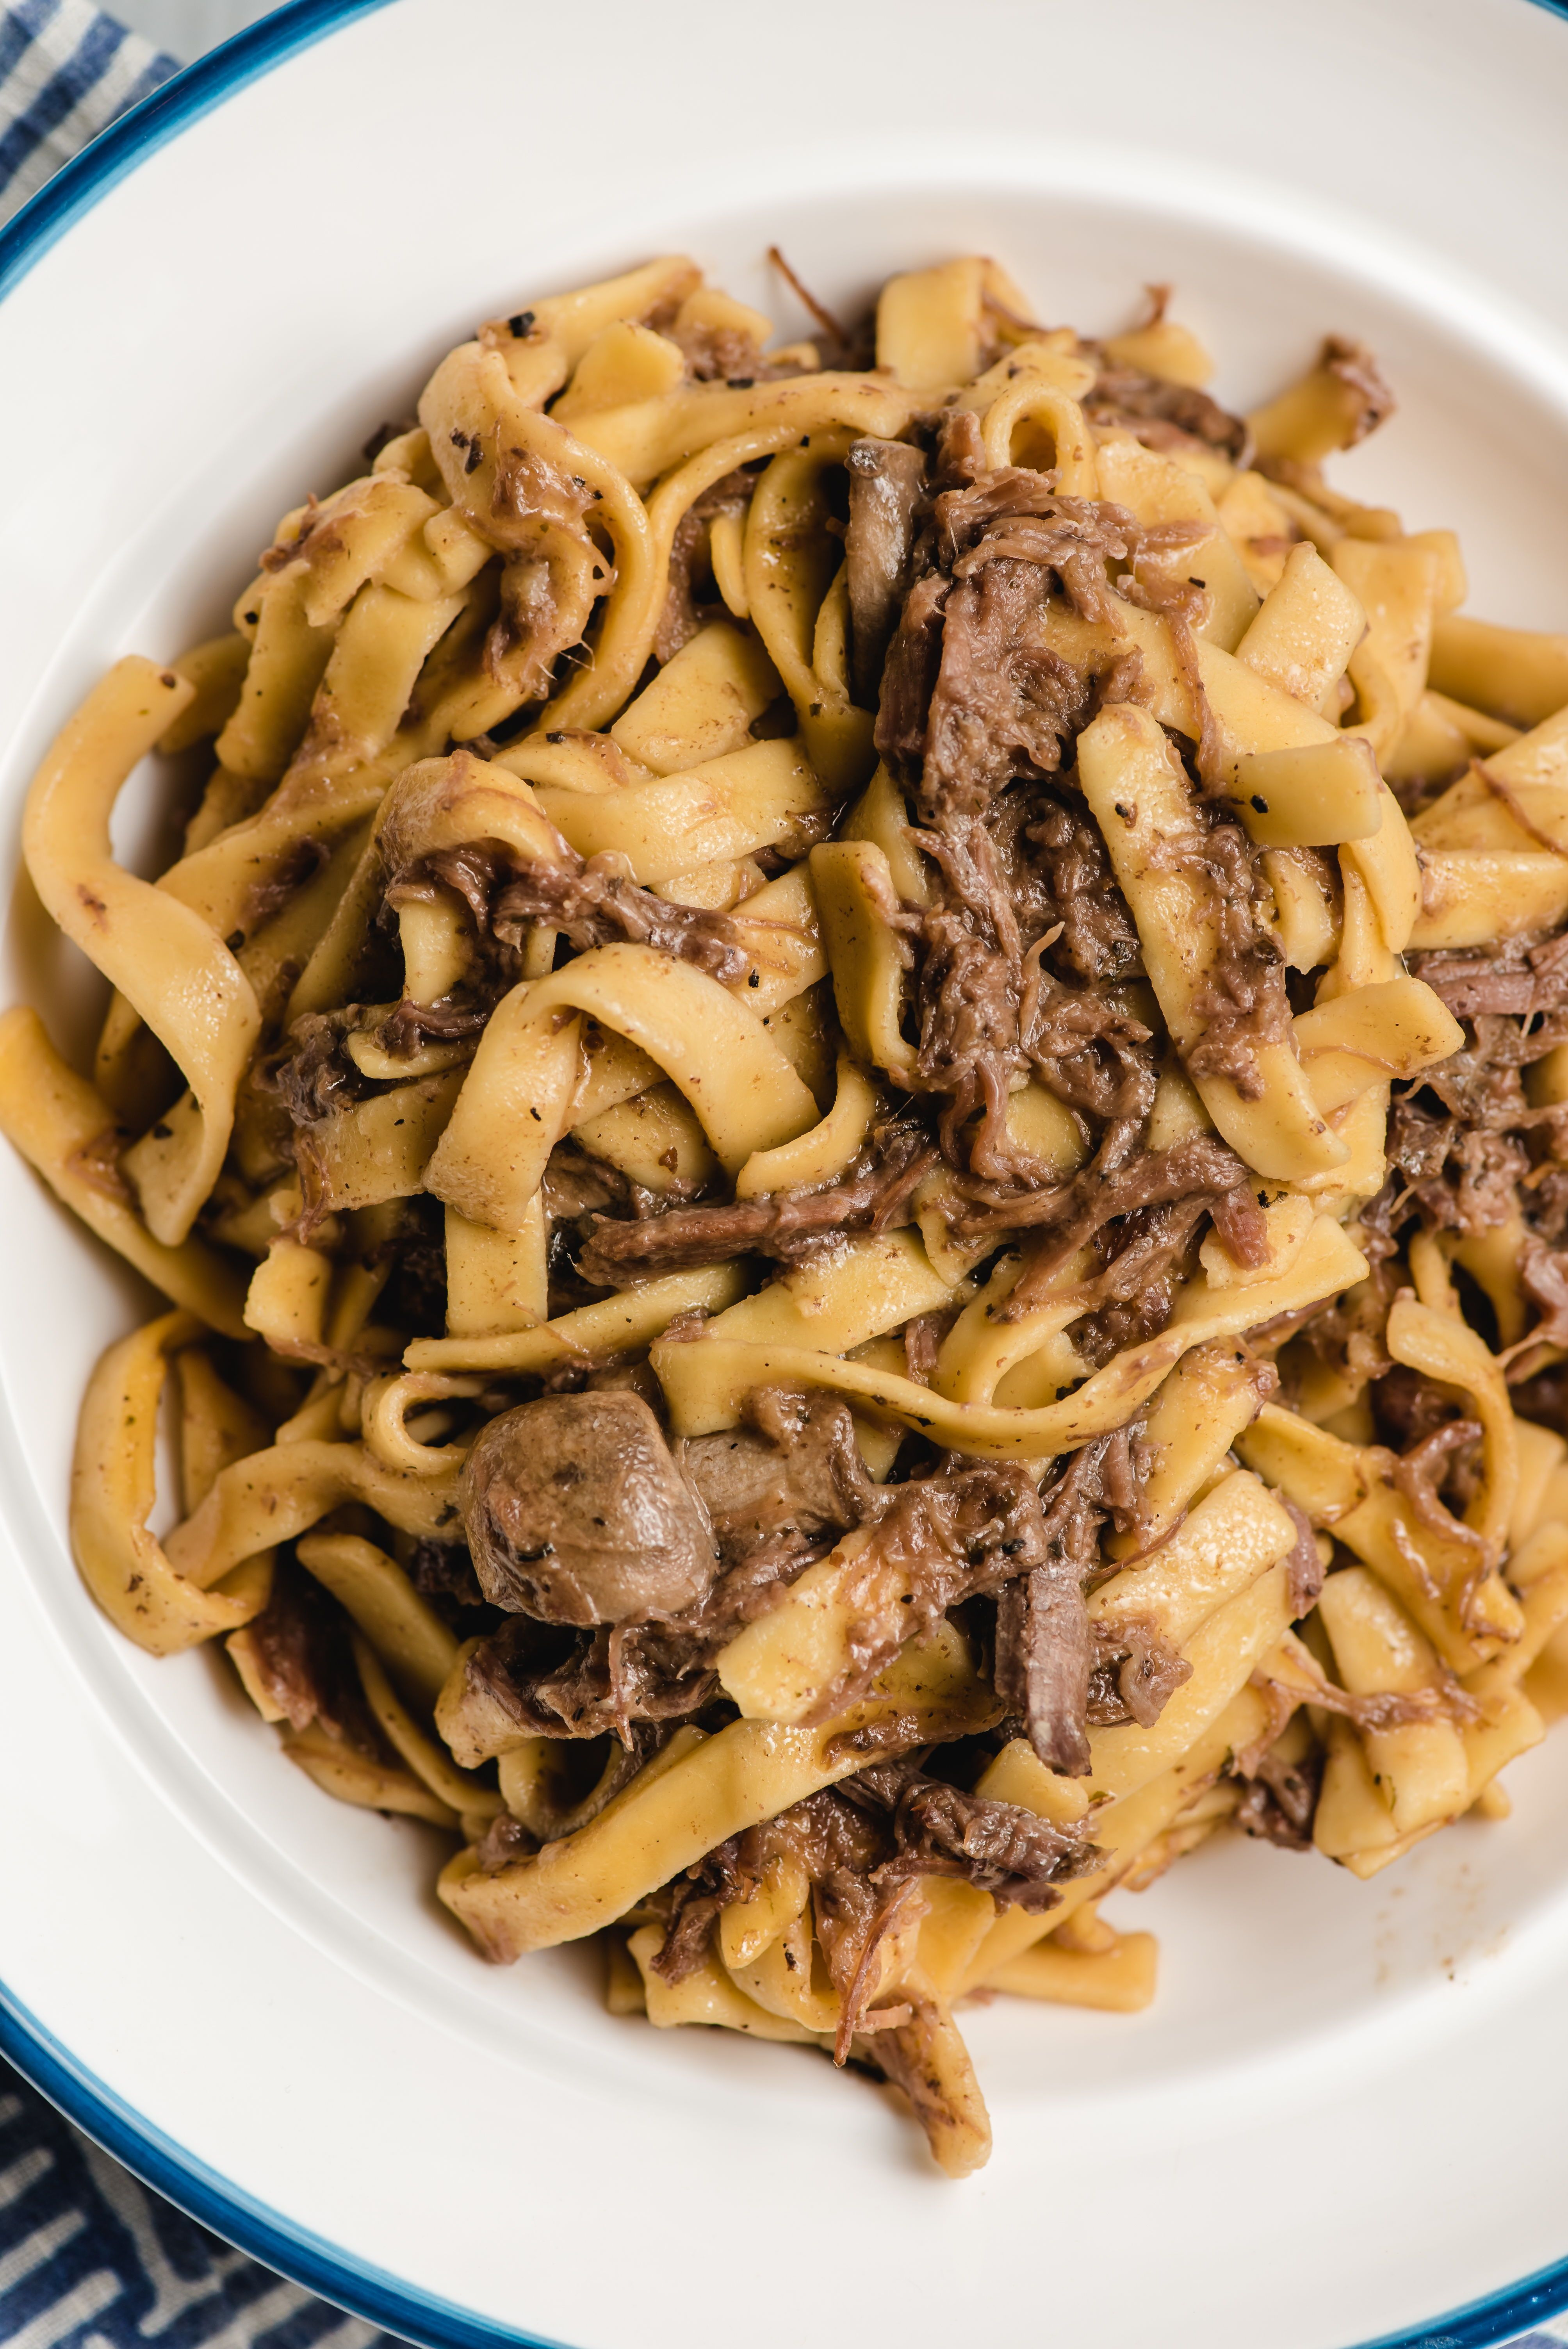 Crock Pot Beef And Noodles In 2020 Slow Cooker Beef Beef And Noodles Perfect Pasta Recipe